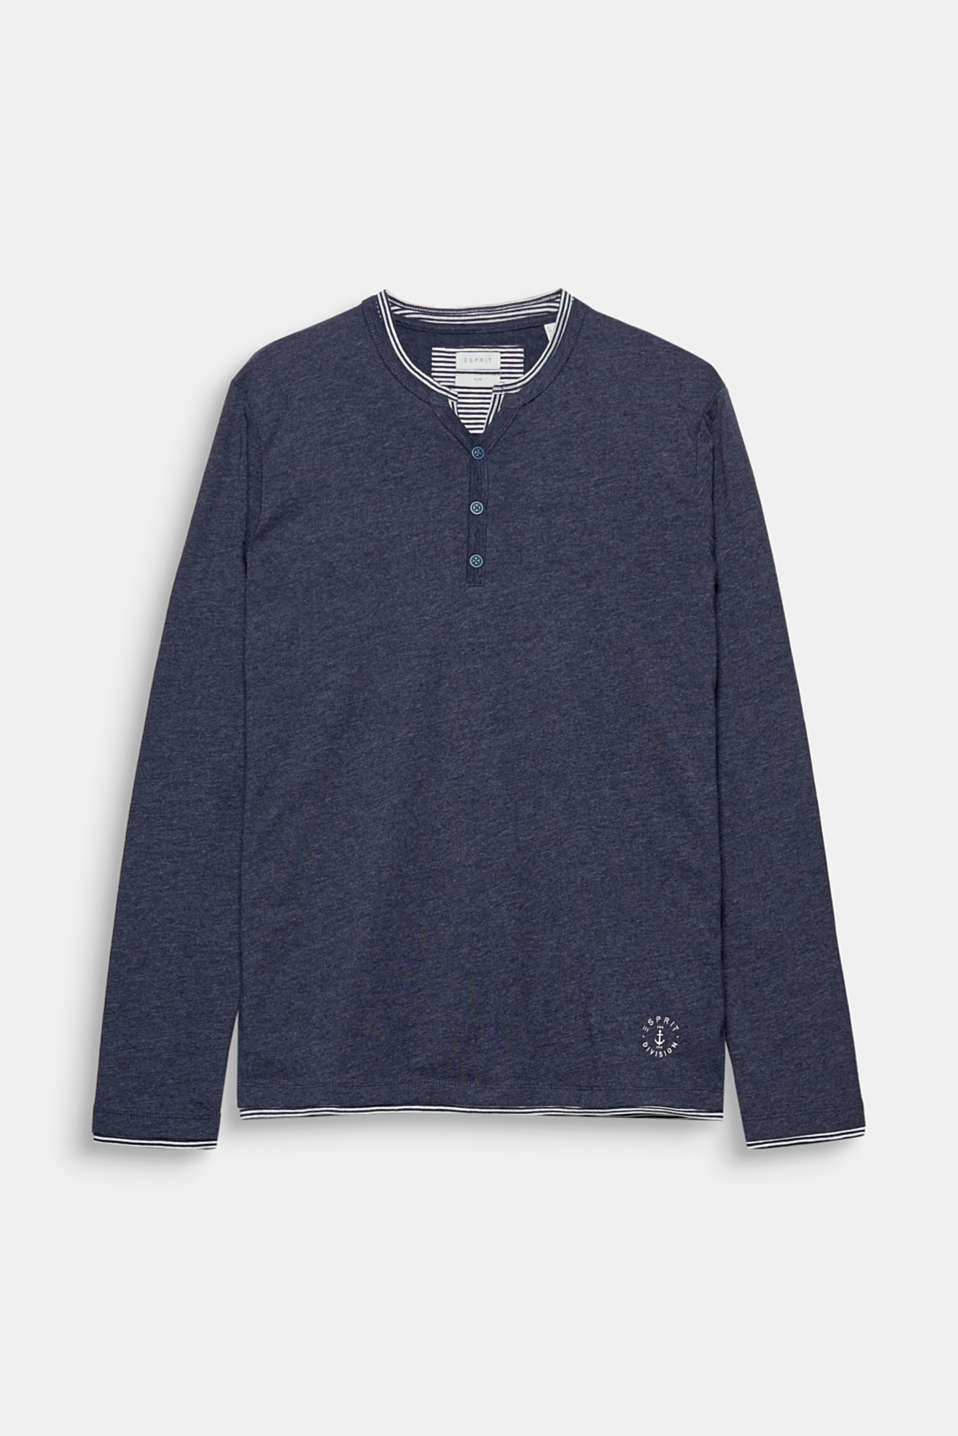 The striped layered look adds a fine detail to this blended cotton long sleeve top with a Henley neckline.